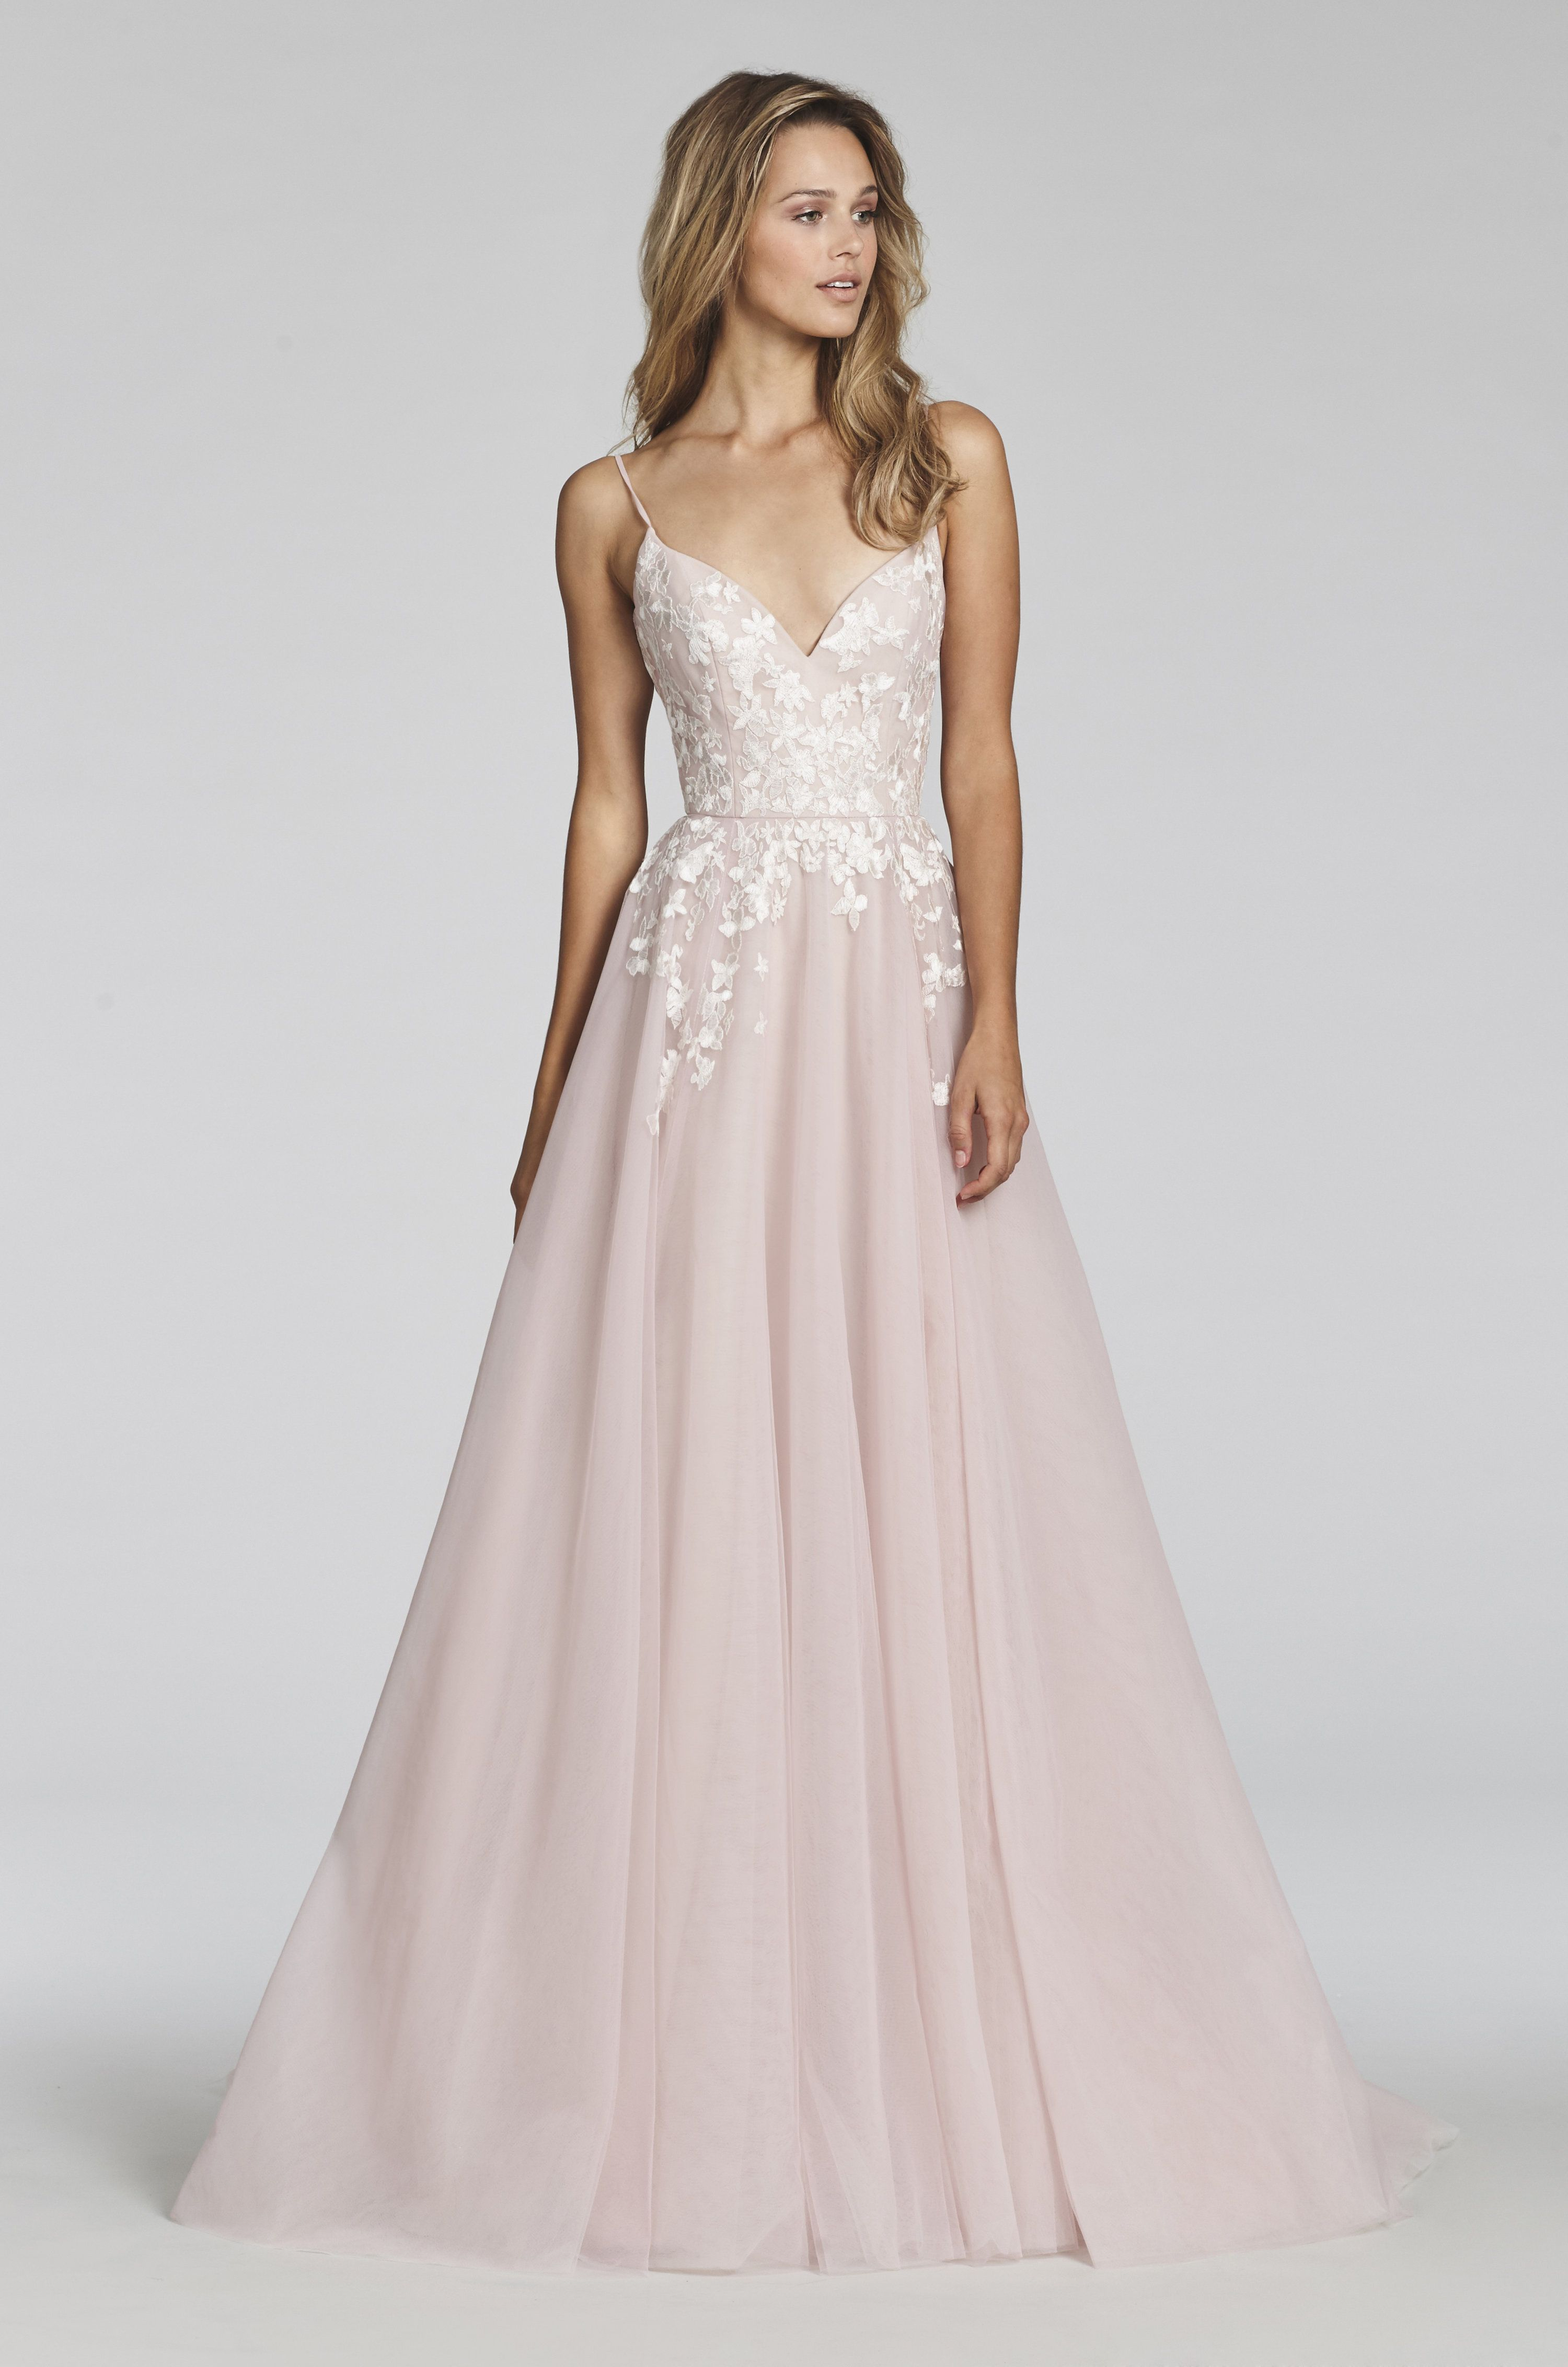 Bridal Gowns and Wedding Dresses by JLM Couture - Style 1709 Denver ...